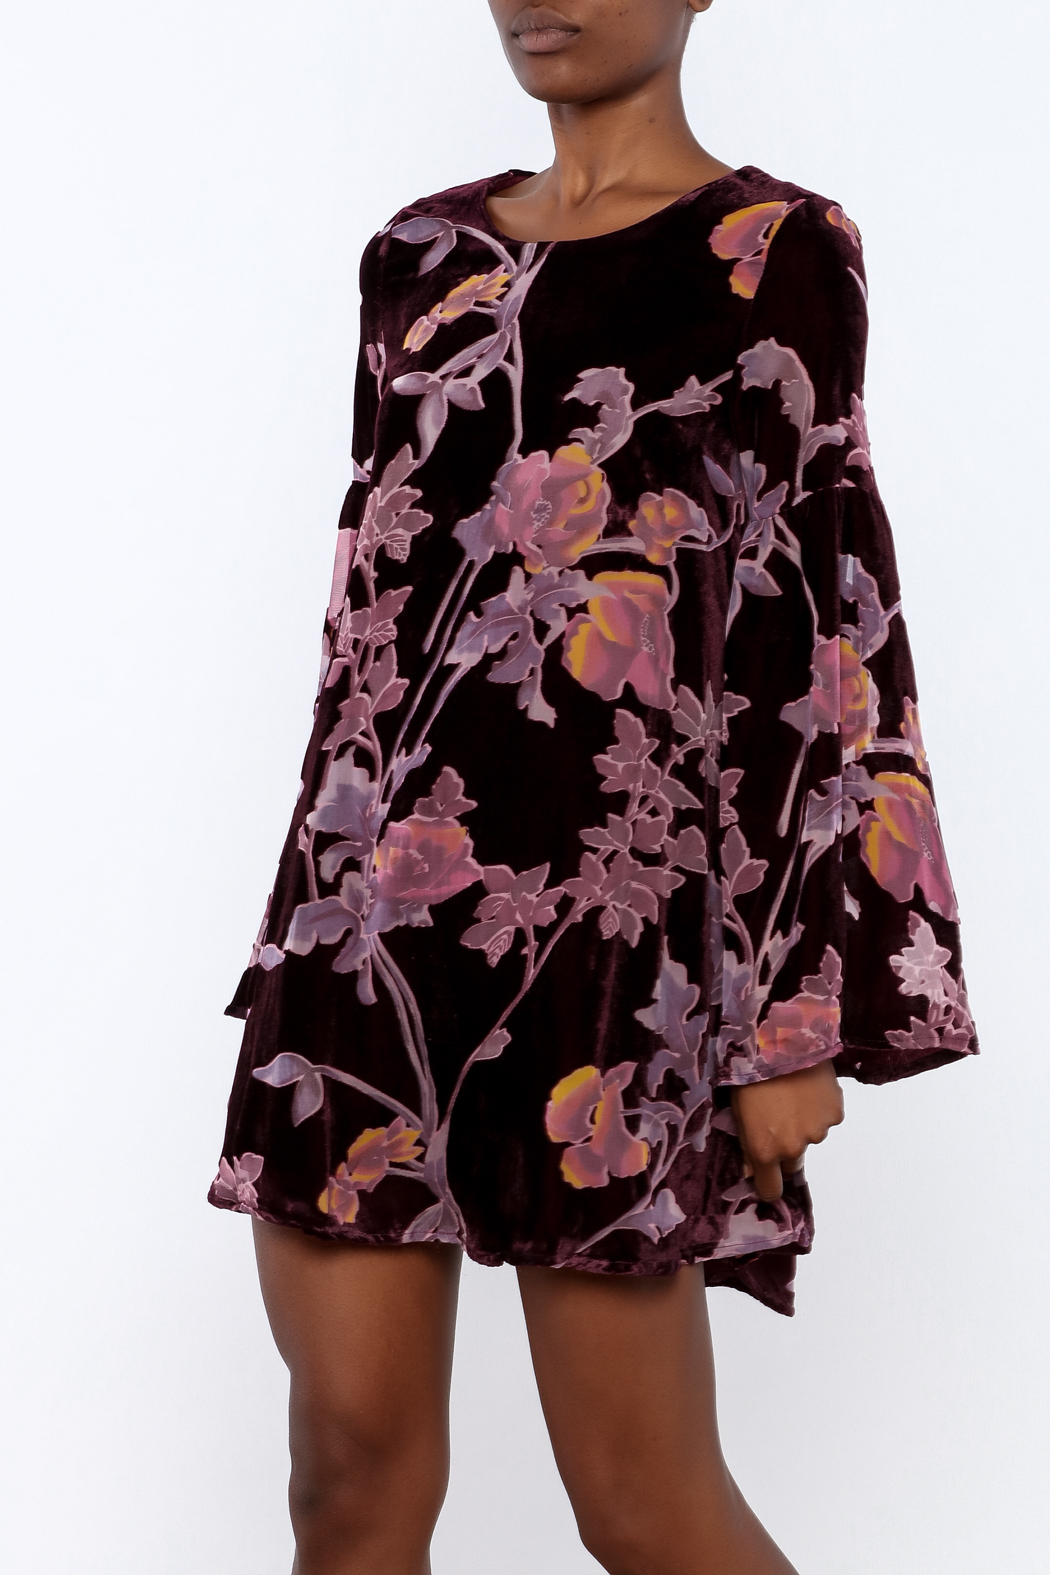 LoveRiche Wine Velour Floral Dress - Main Image